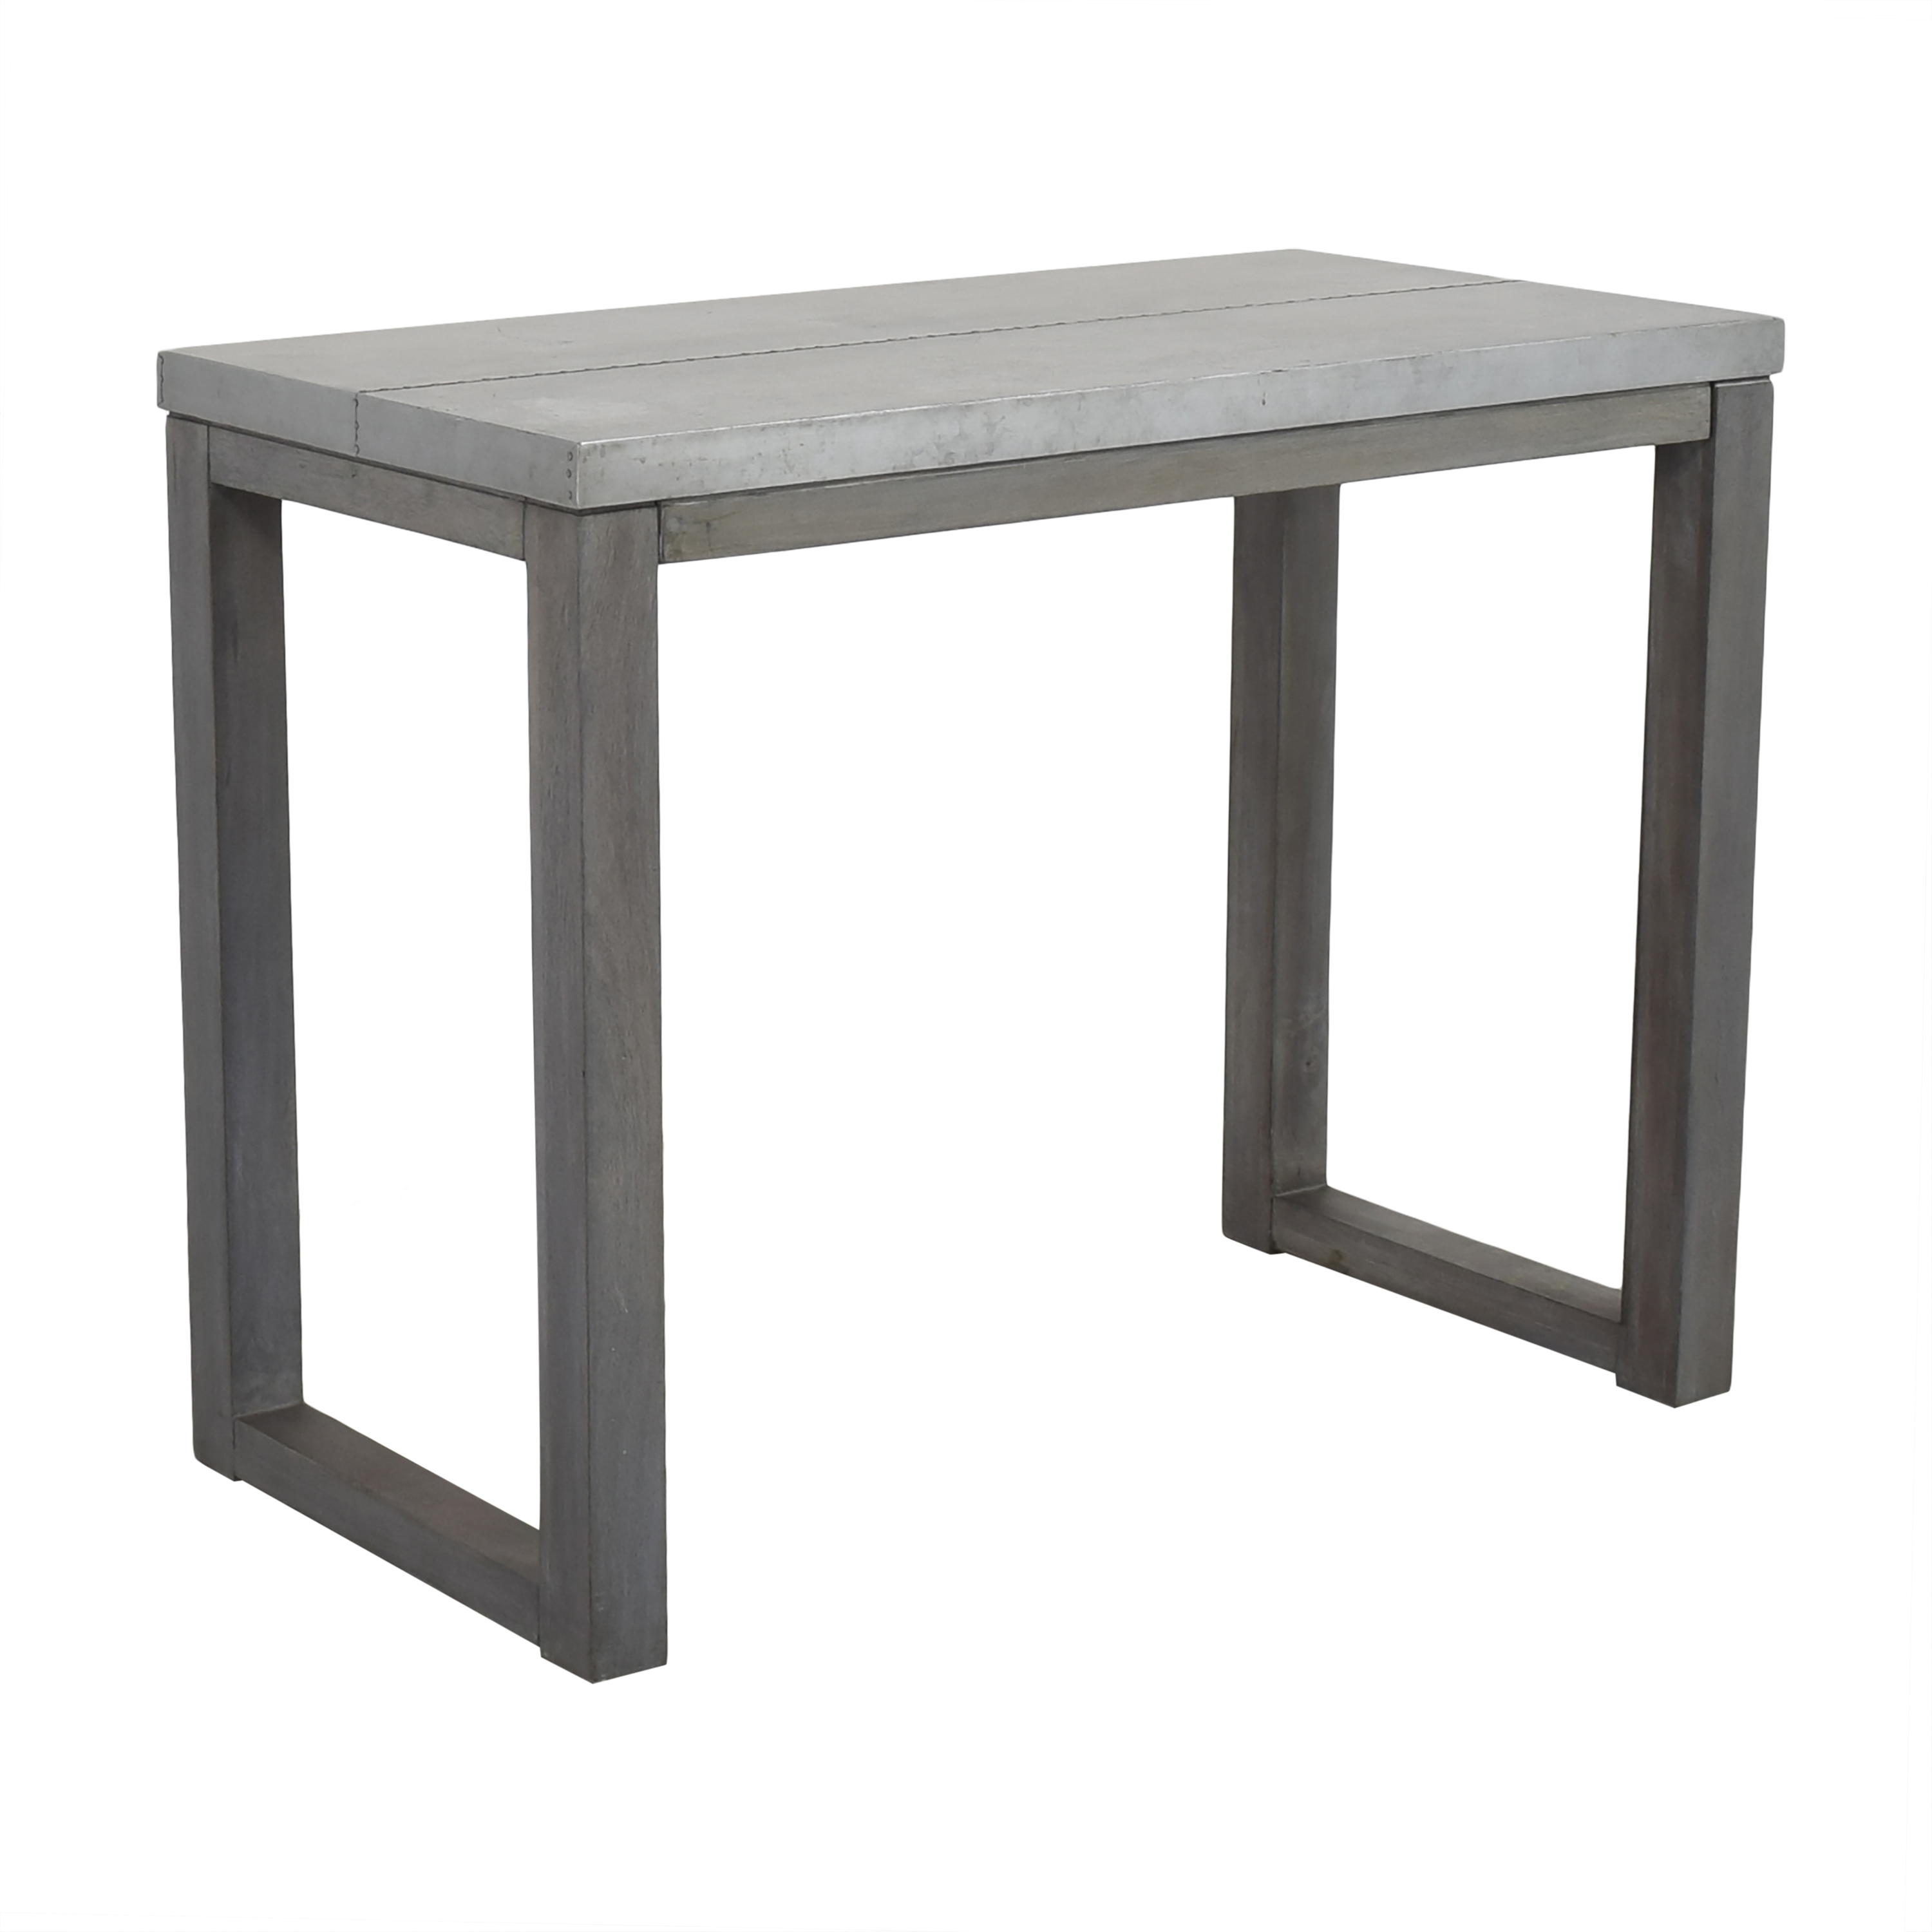 CB2 CB2 Stern Counter Dining Table ct